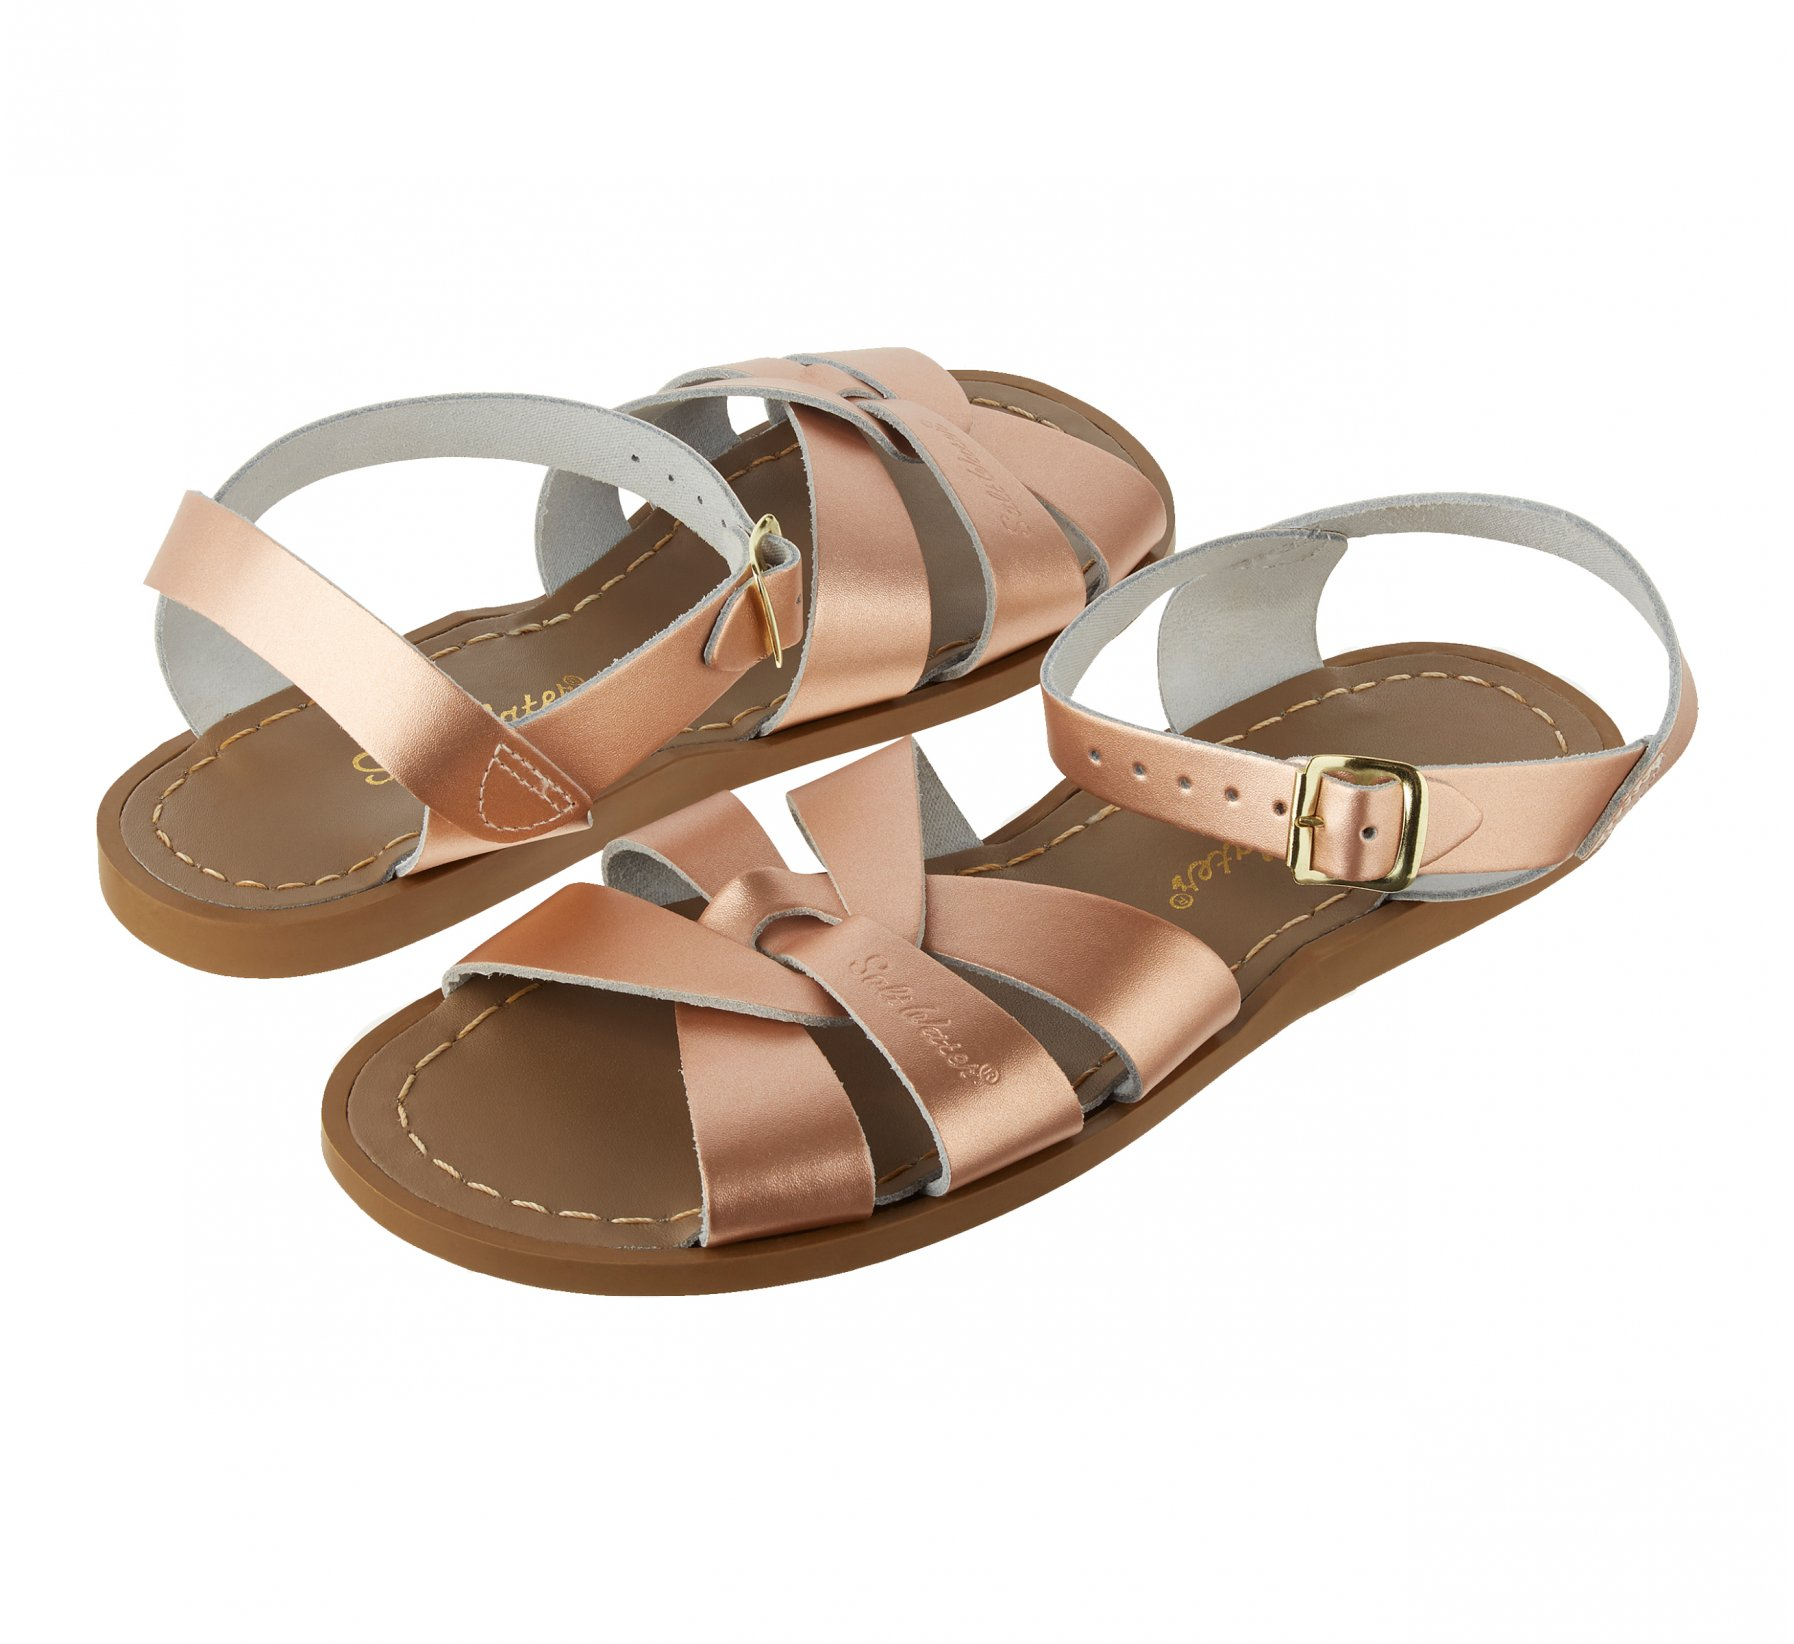 Original Rose Gold - Salt Water Sandals